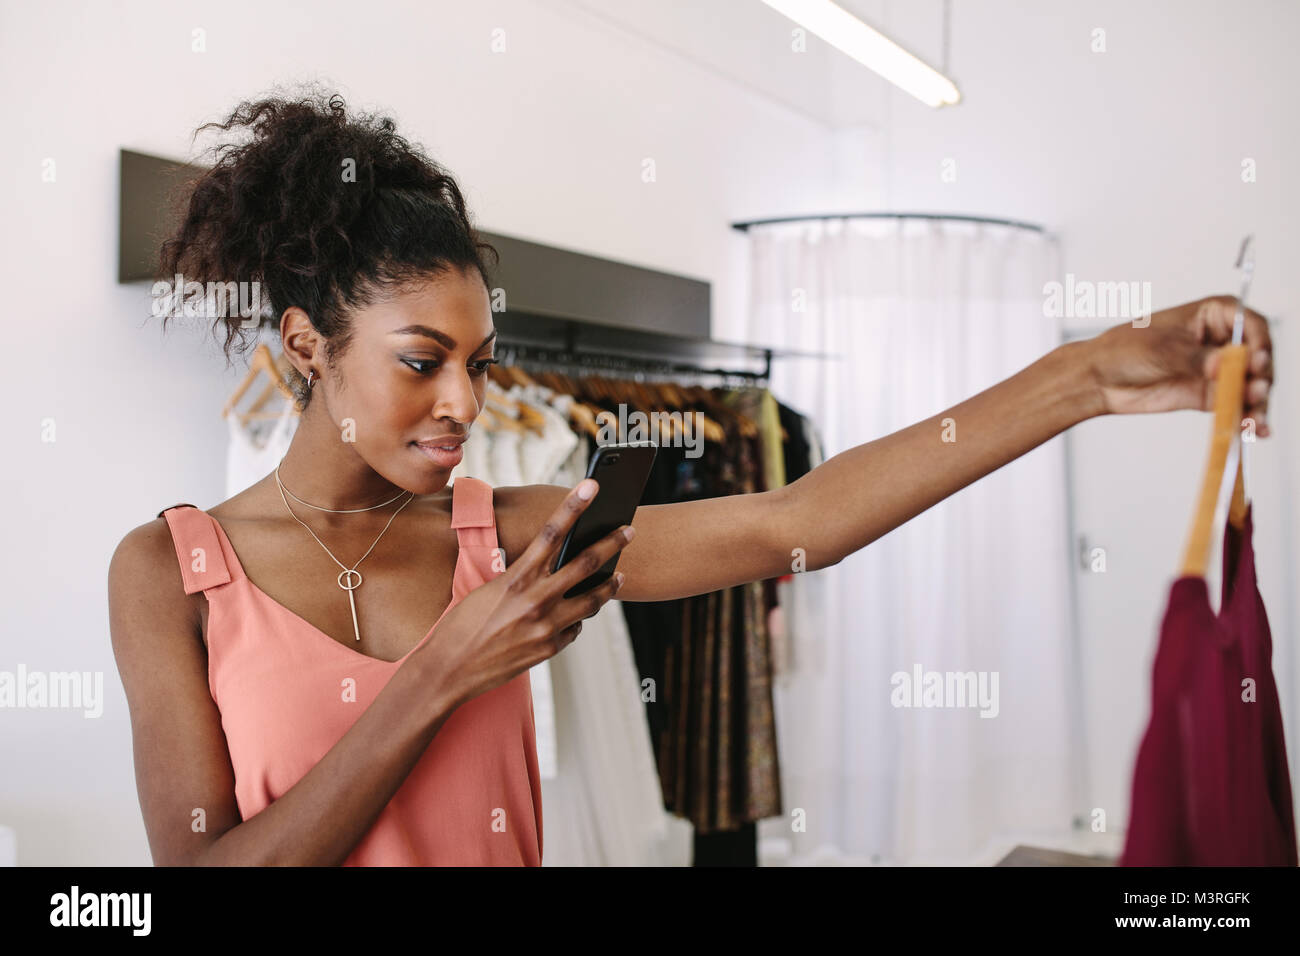 Fashion designer taking photograph of a designer dresses in her fashion studio. Customer taking photograph of dress - Stock Image